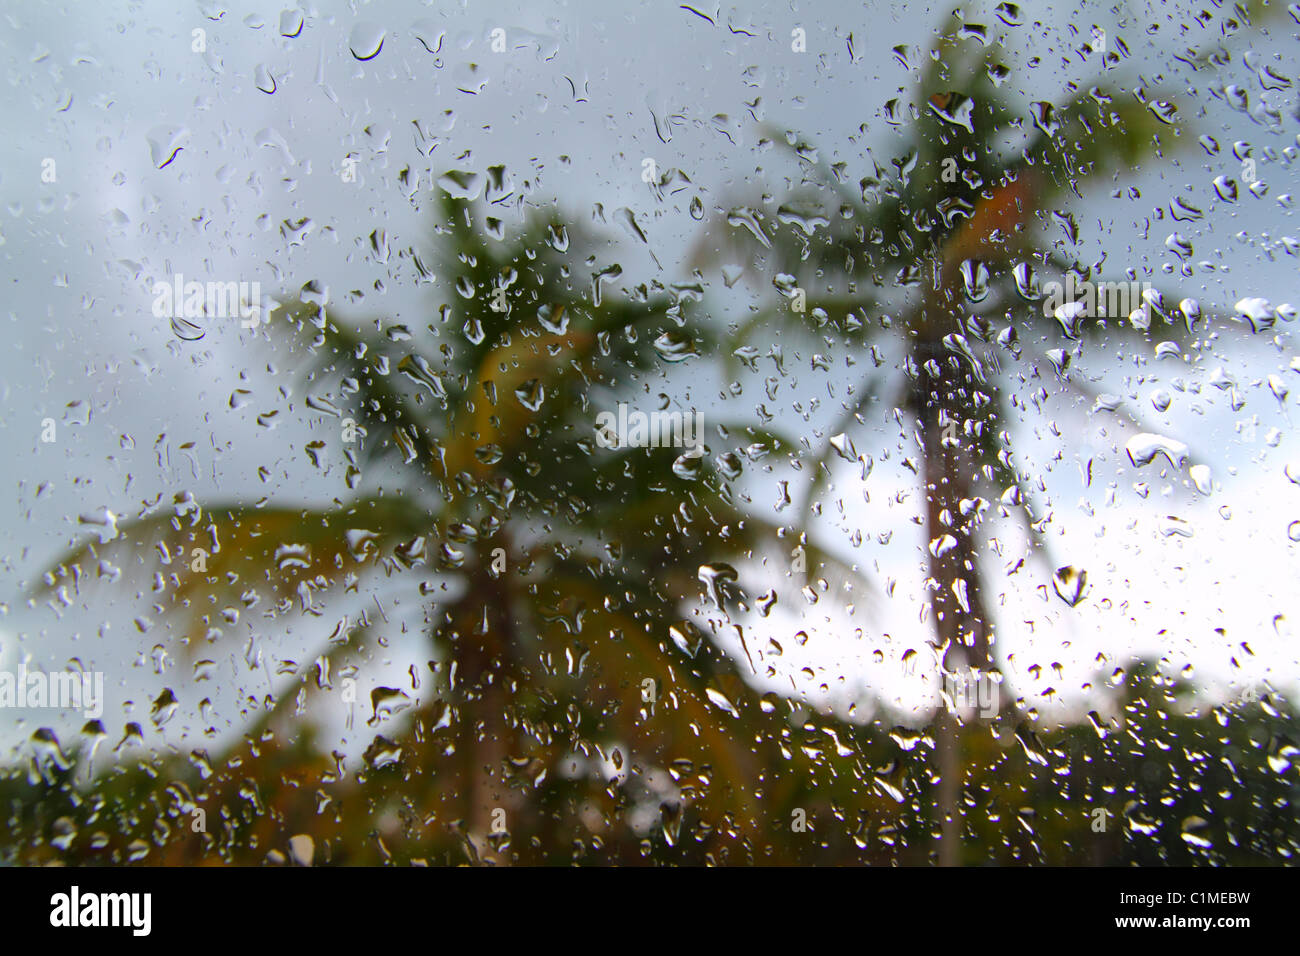 Hurricane tropical storm palm trees from car inside window glass water drops - Stock Image